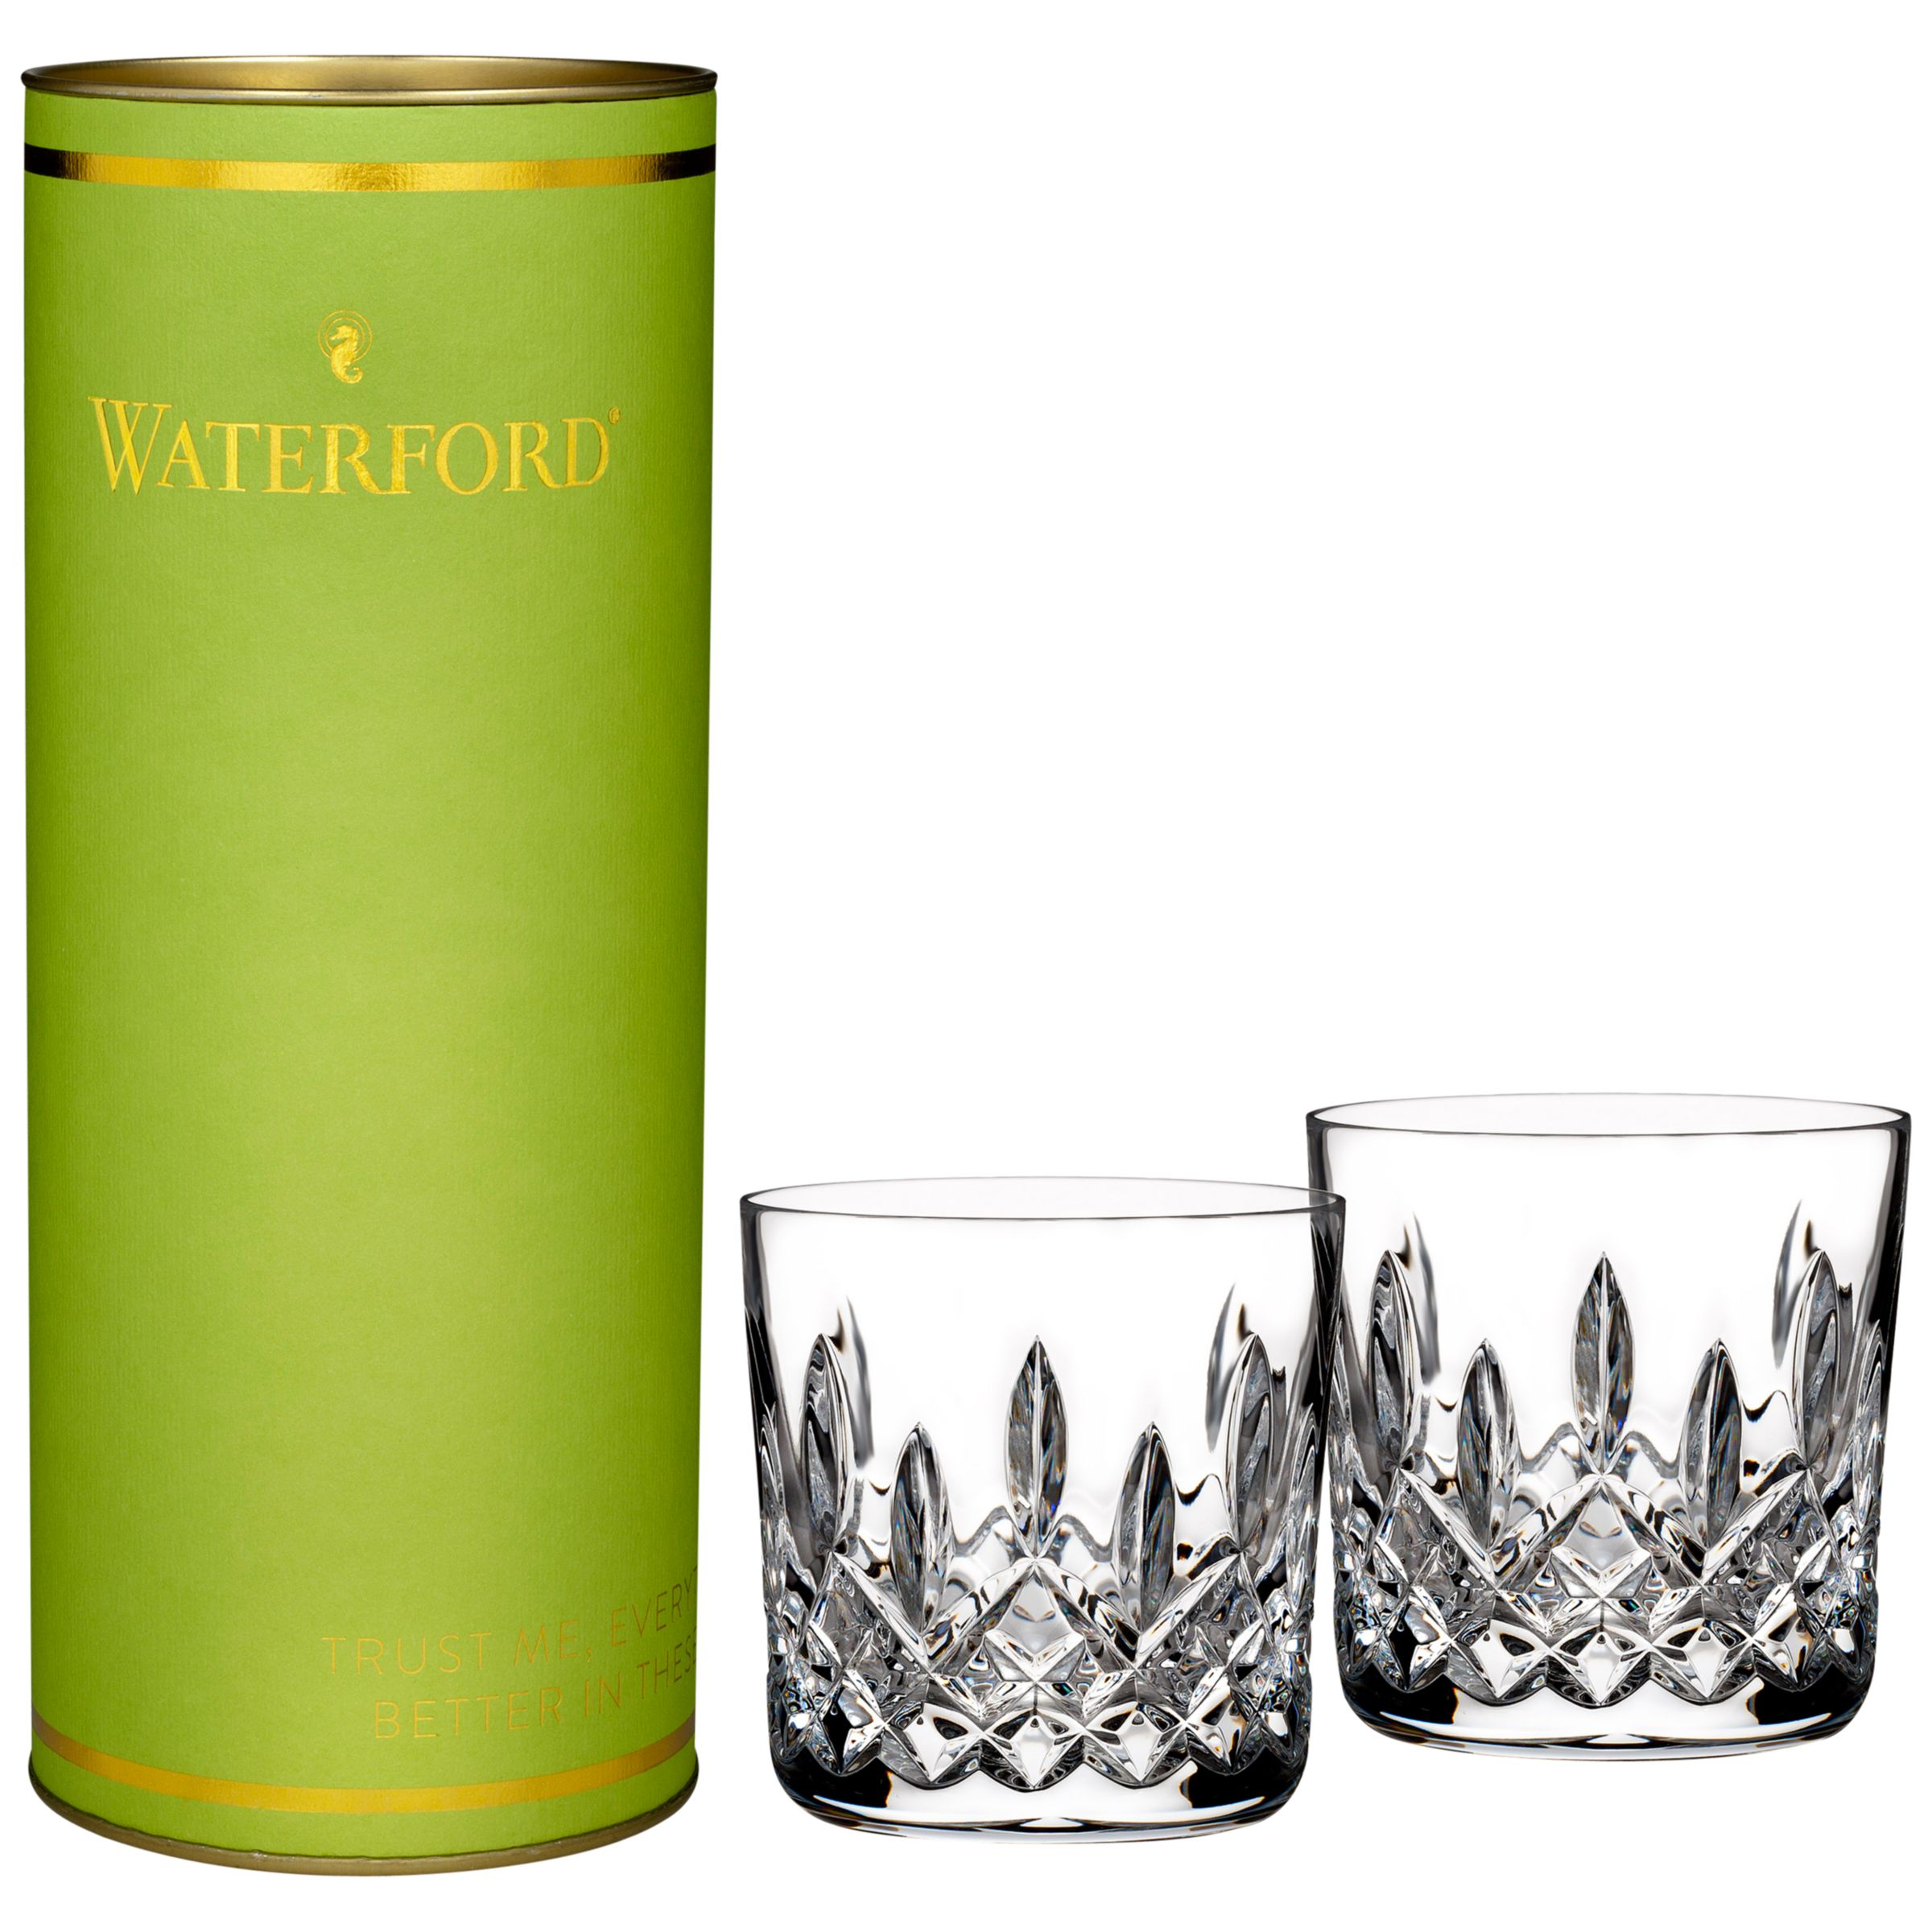 Waterford Waterford Giftology Lismore Tumbler, Clear, Set Of 2